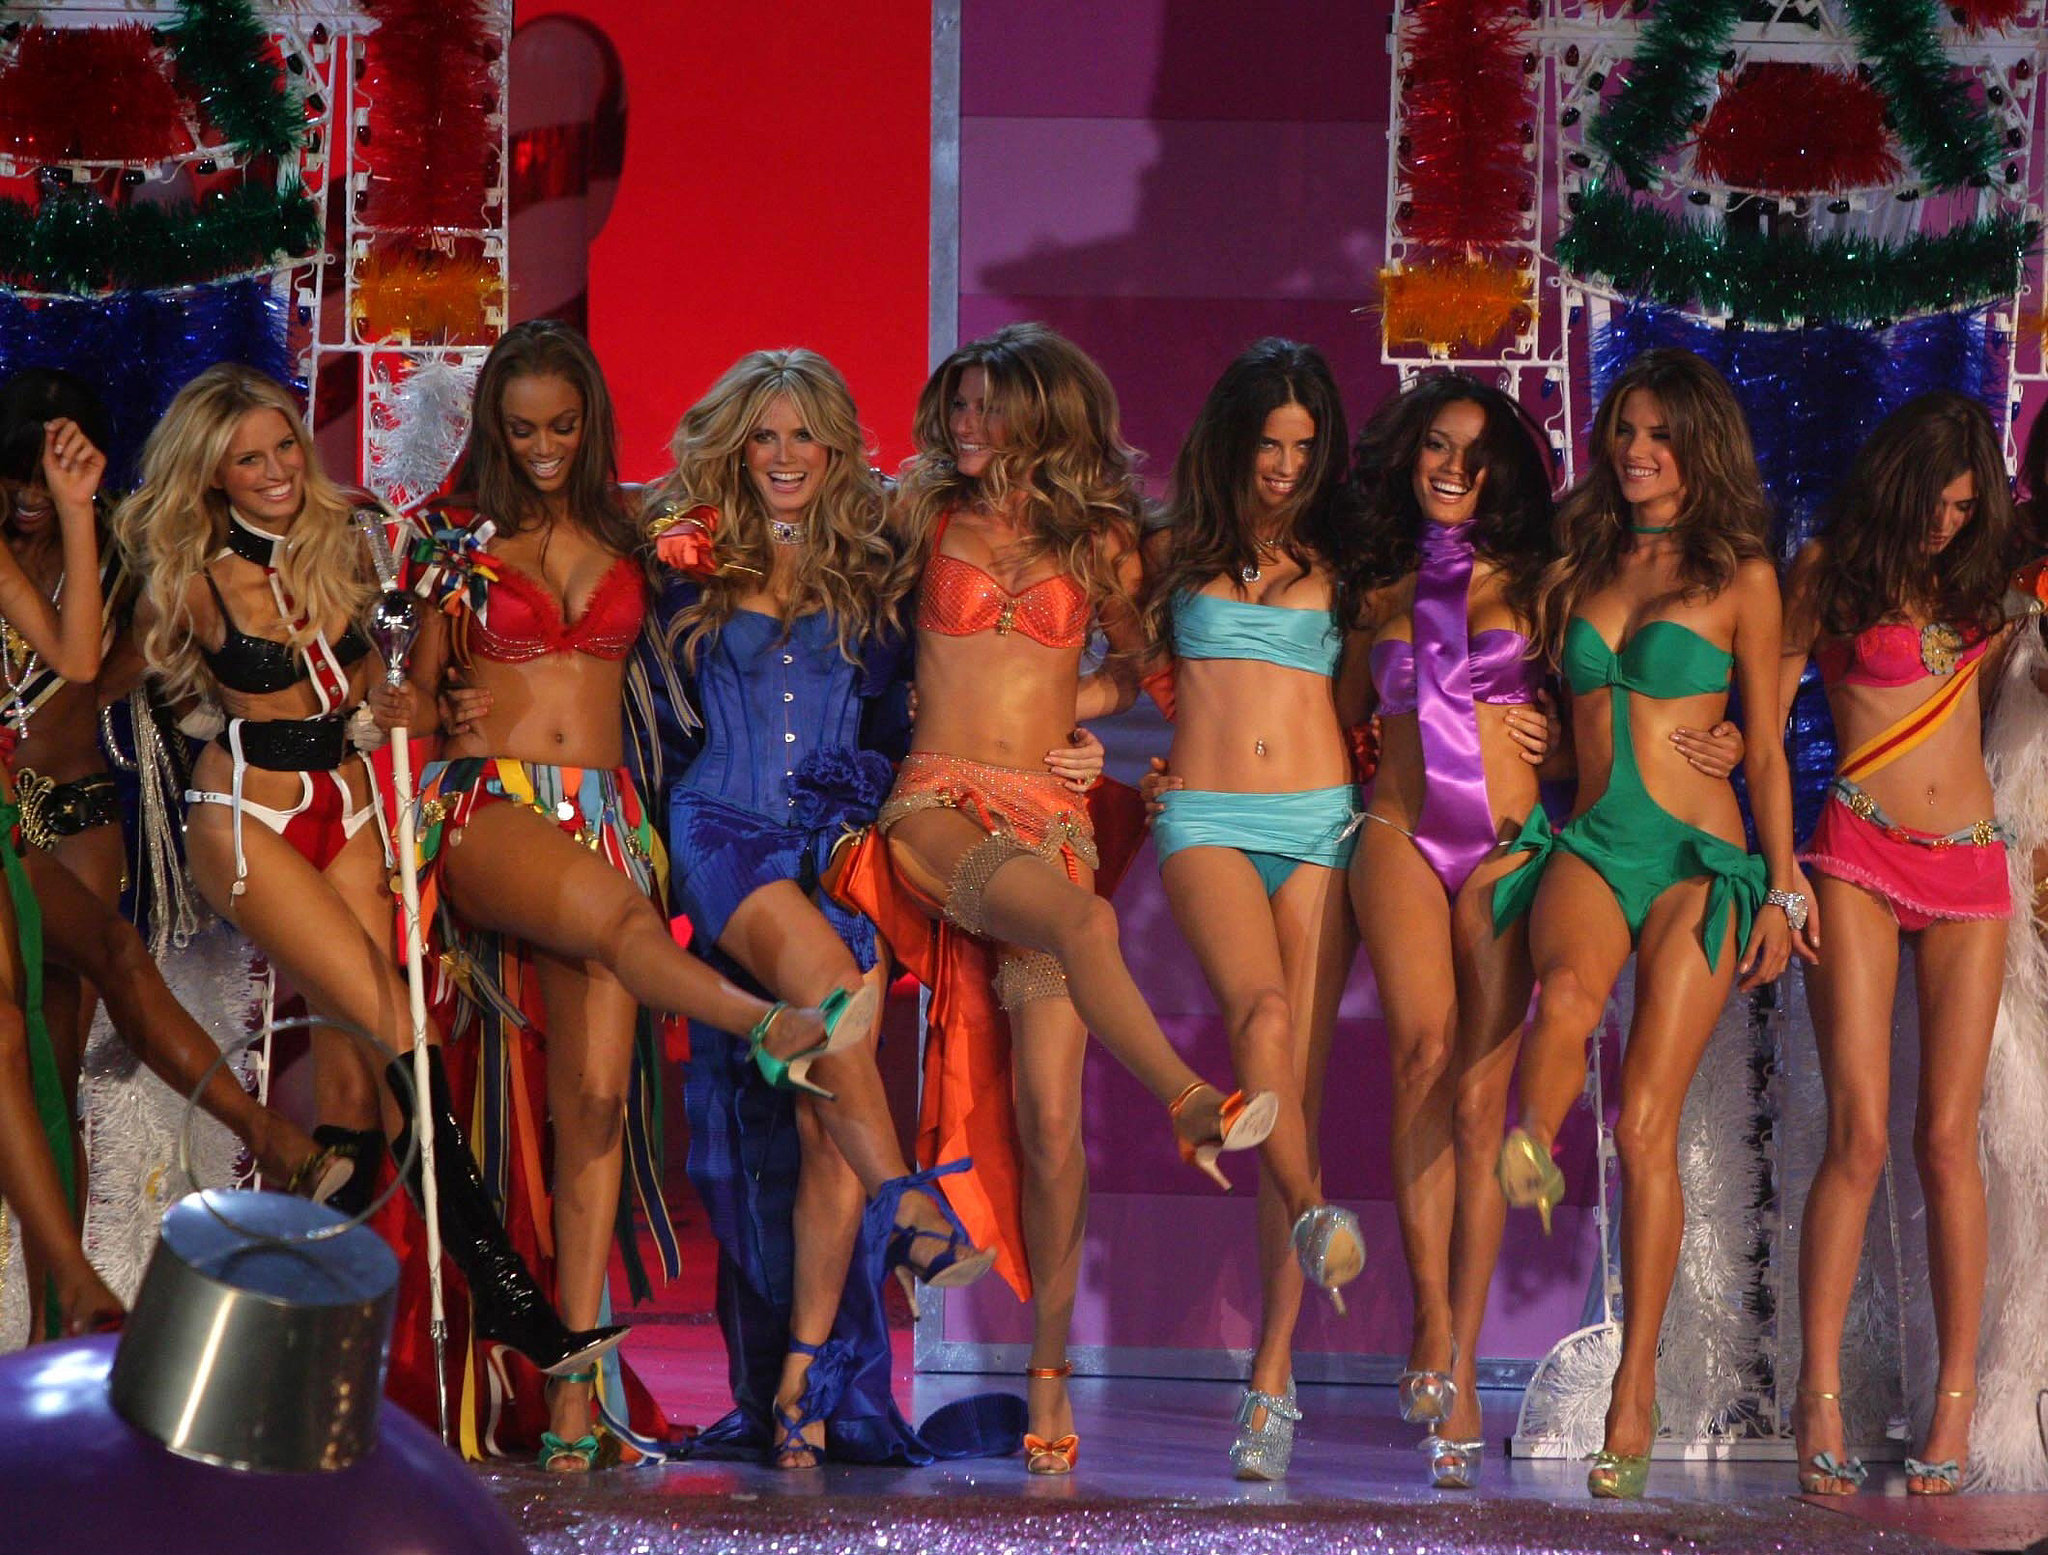 Karolina Kurkova, Tyra Banks, Heidi Klum, Gisele Bundchen, Adriana Lima, Selita Ebanks, Alessandra Ambrosio did the can-can while closing the 2005 show.